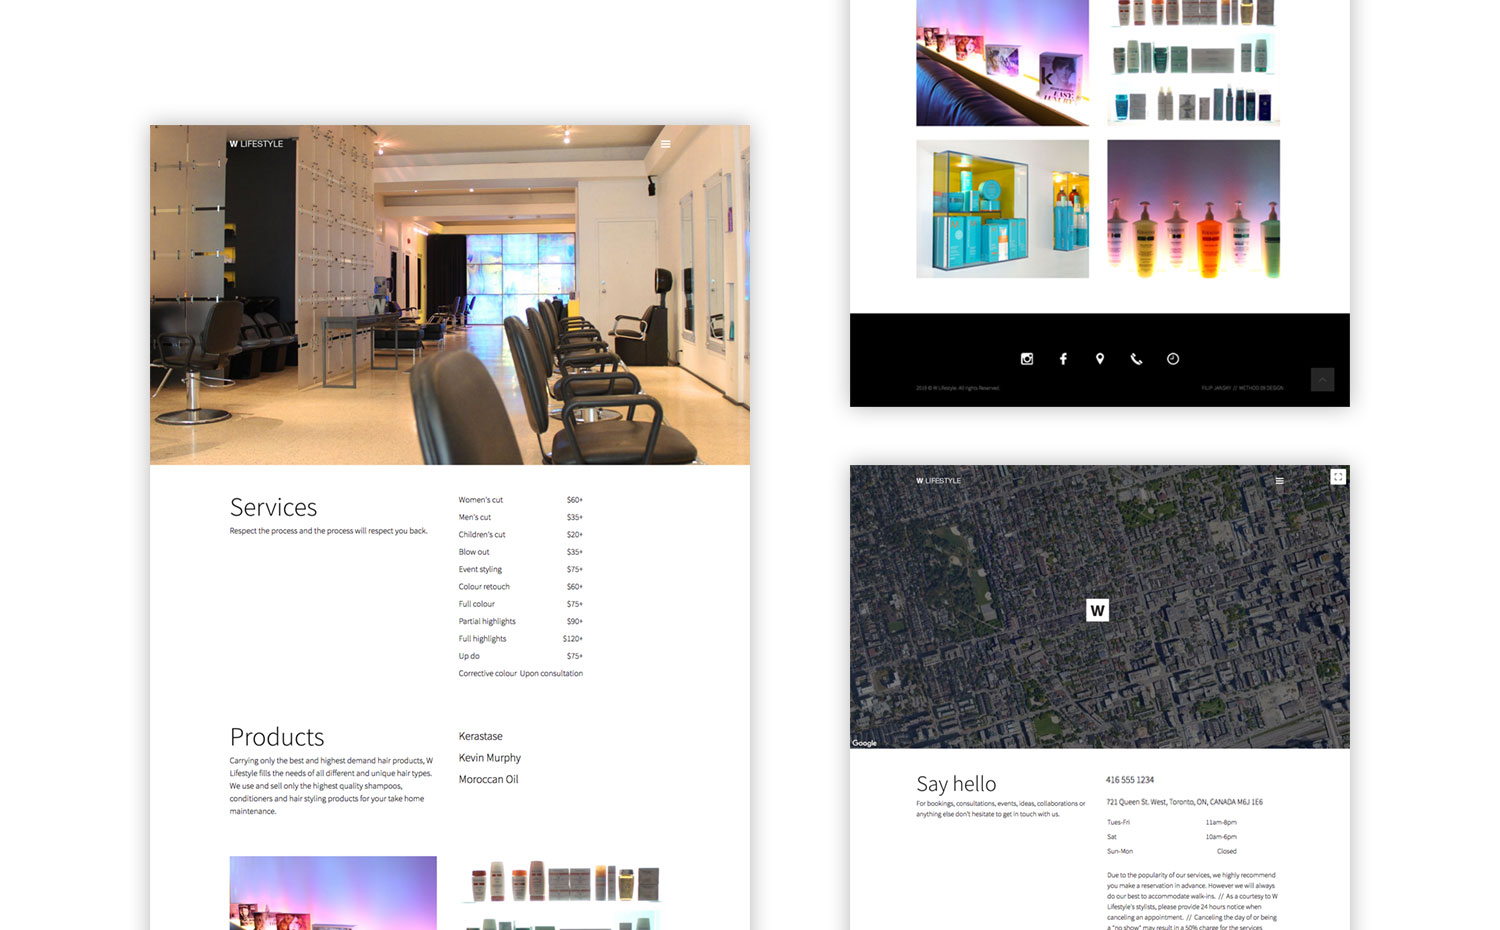 Multiple pages from the W Lifestyle responsive website